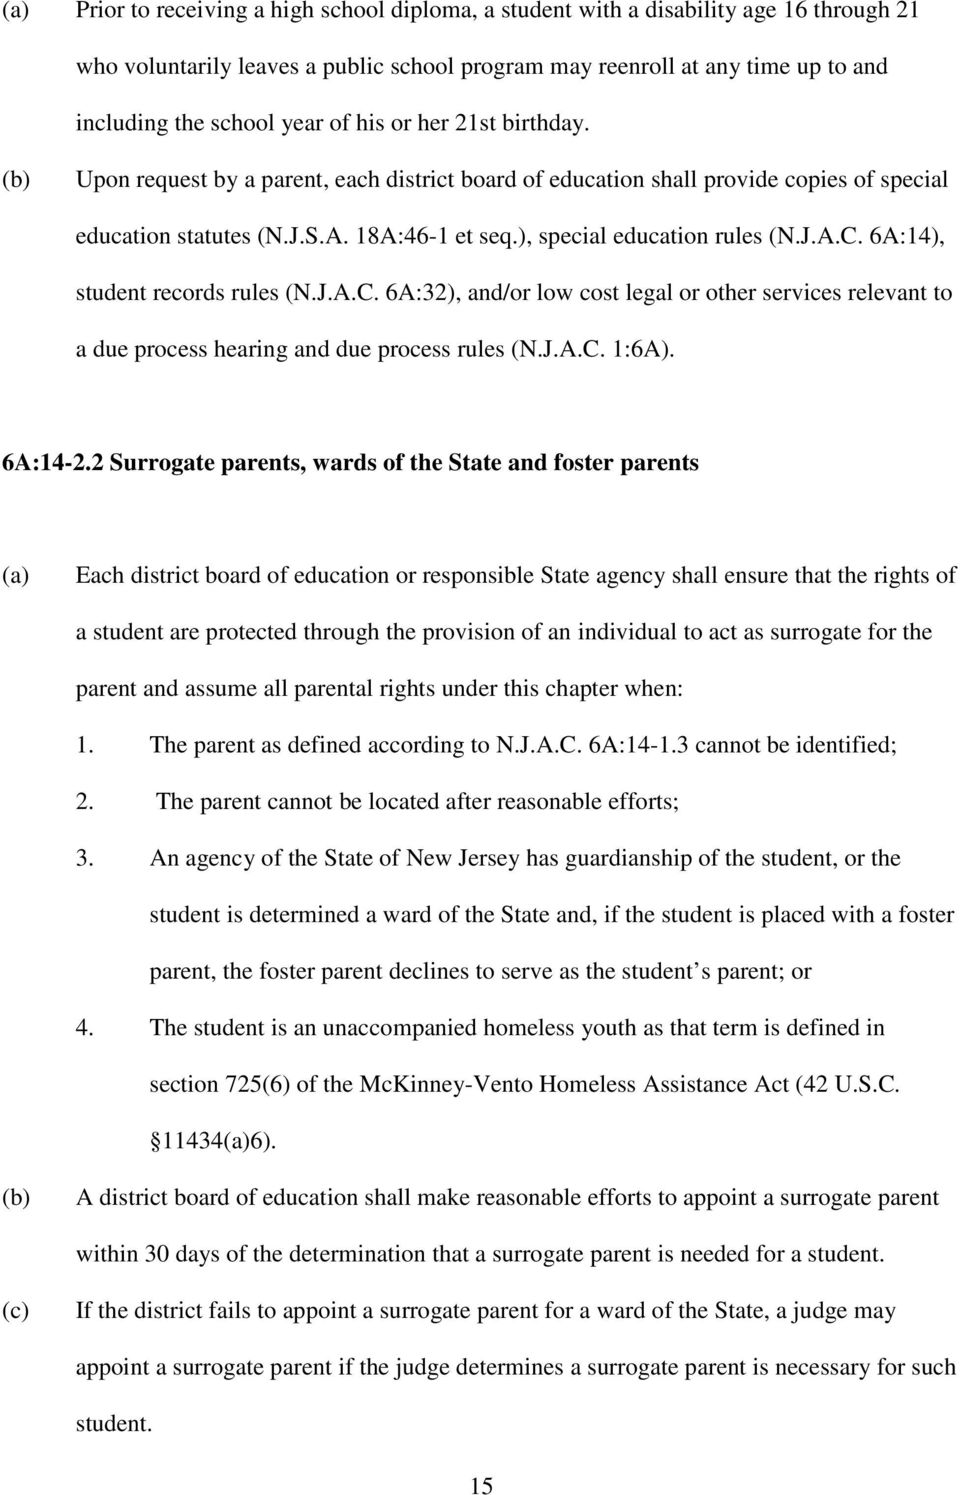 J.A.C. 6A:14), student records rules (N.J.A.C. 6A:32), and/or low cost legal or other services relevant to a due process hearing and due process rules (N.J.A.C. 1:6A). 6A:14-2.